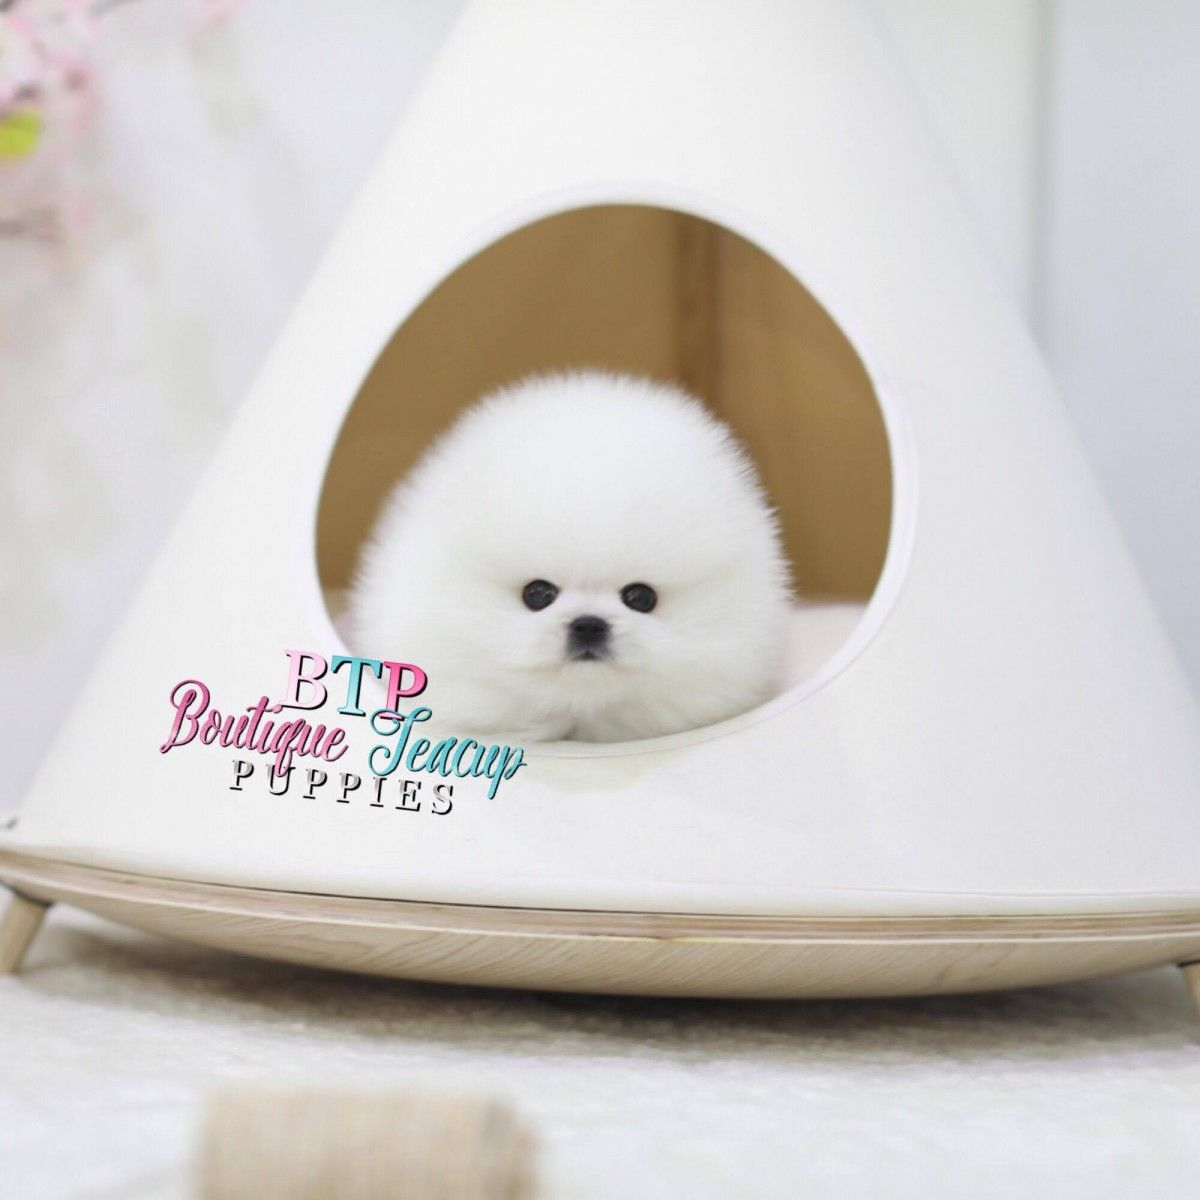 Micro Teacup Pomeranian Puppies For Sale In Texas White Miniature Toy Pom Puppies For Sale Pomeranian Puppy For Sale Pomeranian Puppy Pomeranian Puppy Teacup